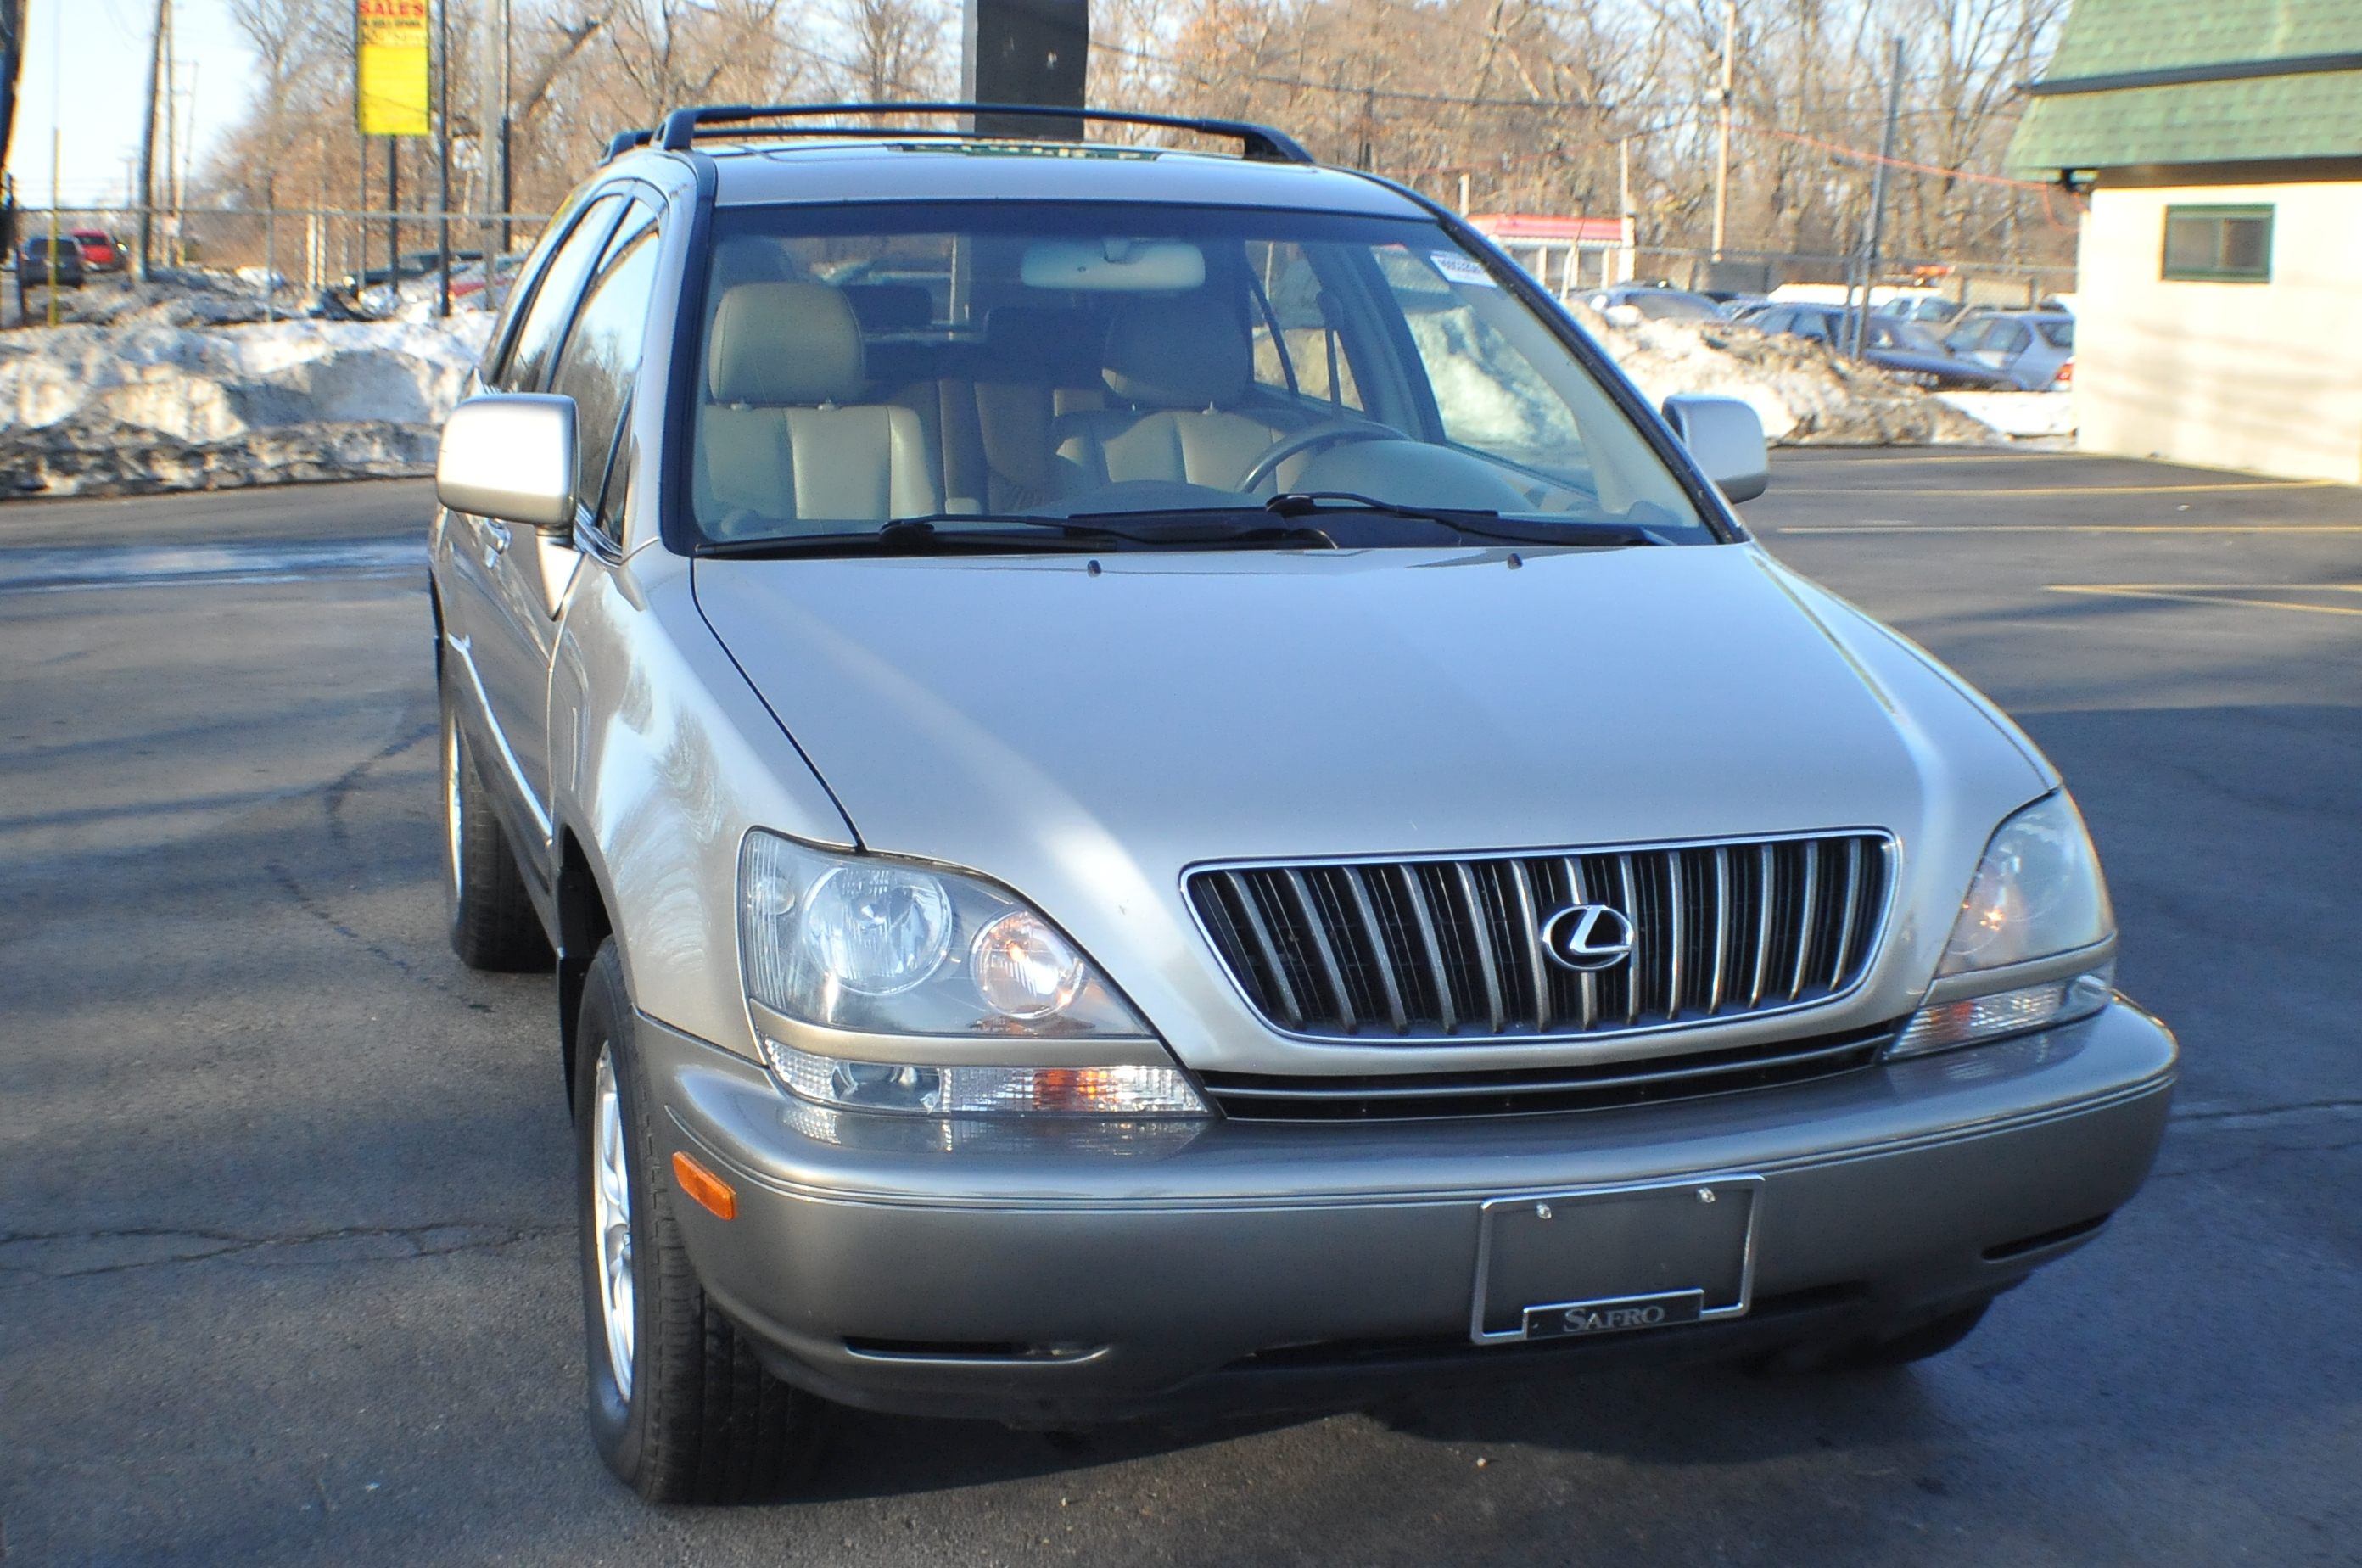 2000 Lexus RX300 Beige Topaz SUV Used Car Sale Beach Park Buffalo Grove Deerfield Fox Lake